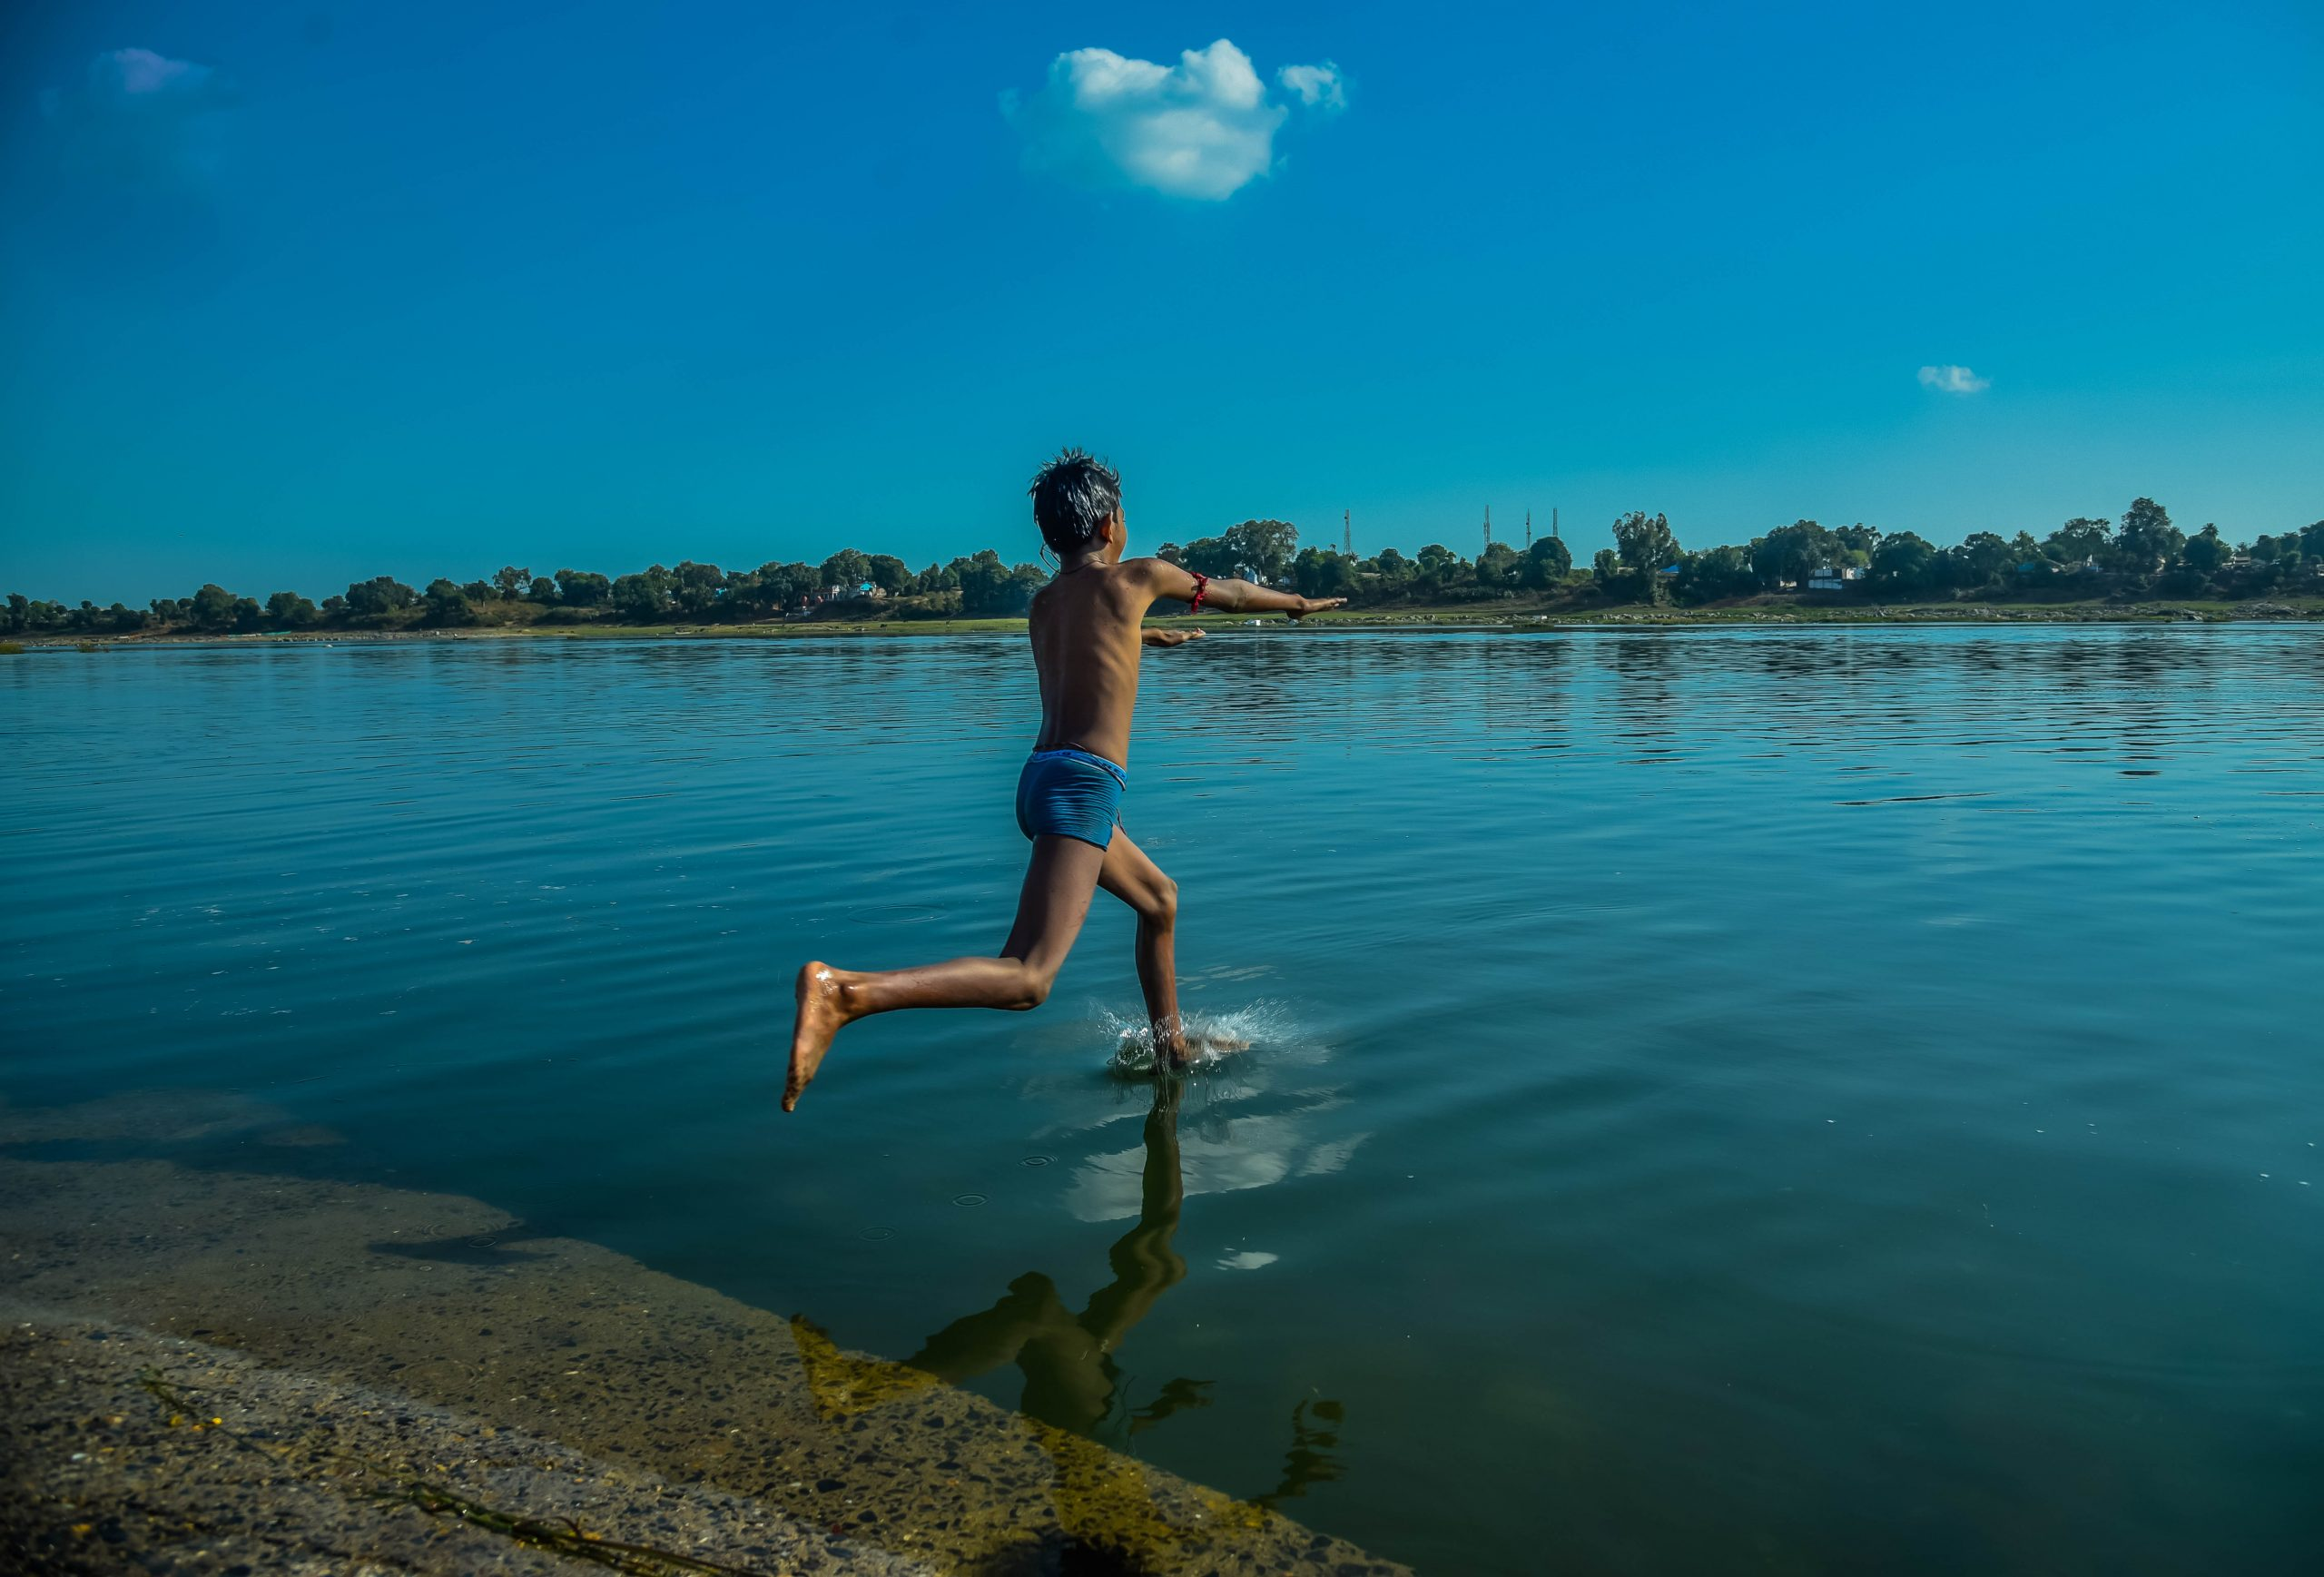 Man jumping into the river